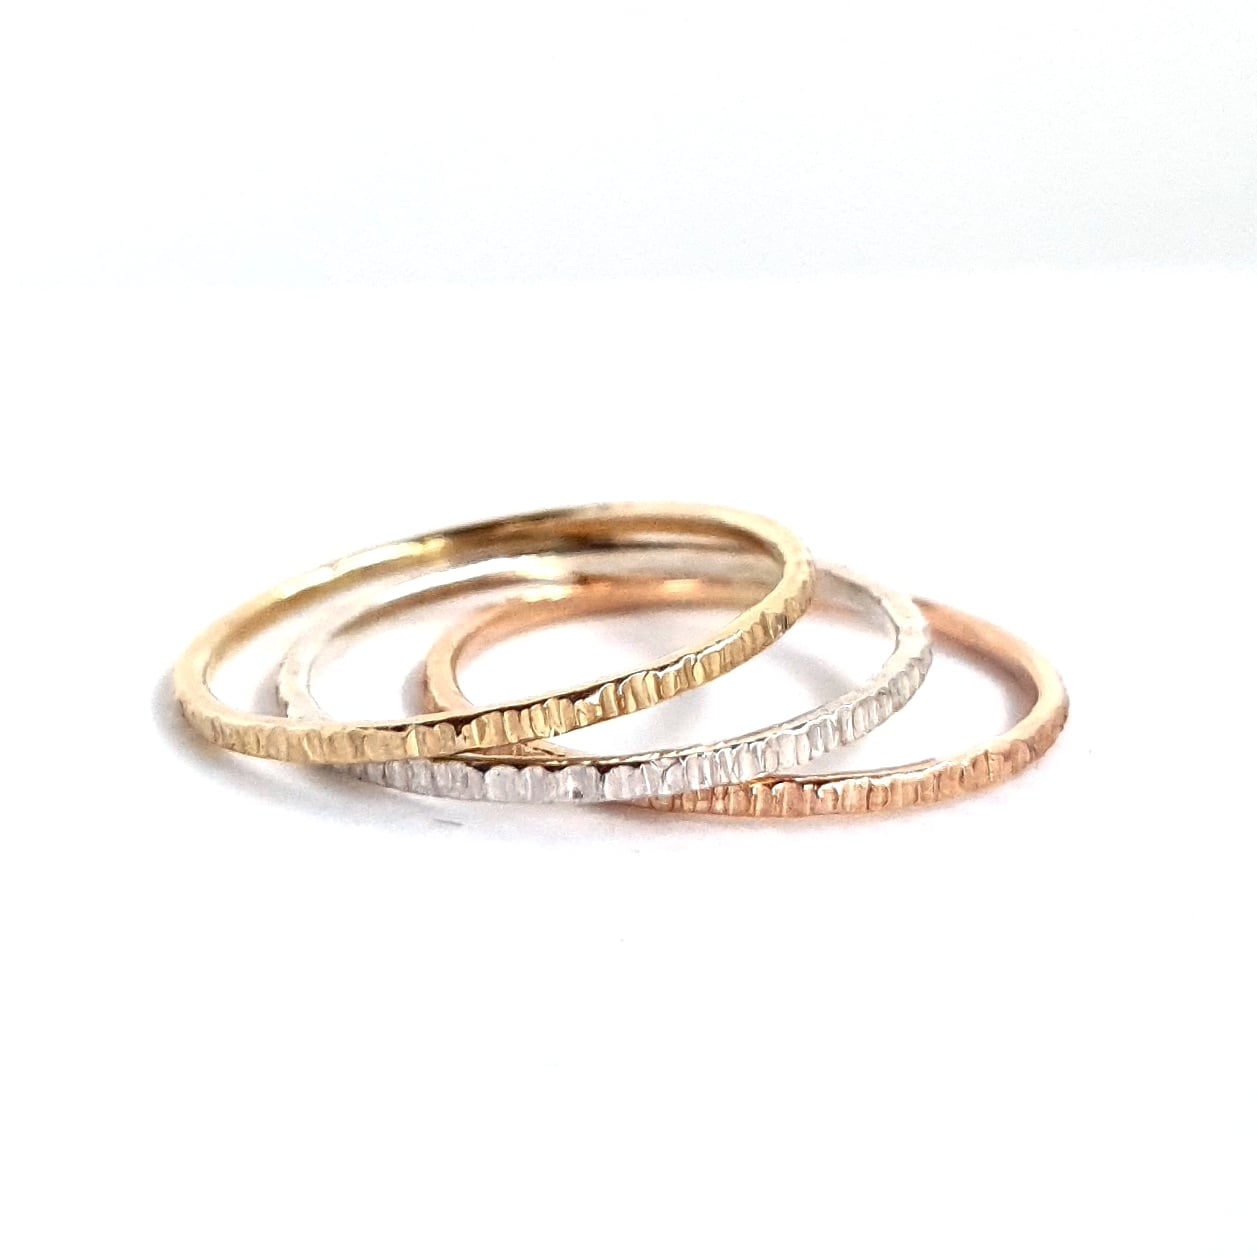 Emily Eliza Arlotte Handcrafted Fine Jewellery - Handmade Australian Tasmanian Jewelry Ethically Made Sustainable Recycled Sterling Silver Textured Contemporary Dainty Statement Unique Trendy Modern Stack Ring Boho Bohemian Gypsy Witchy Alternative Style Festival Fashion Shop Online Boutique Rose Gold Yellow Gold 9ct